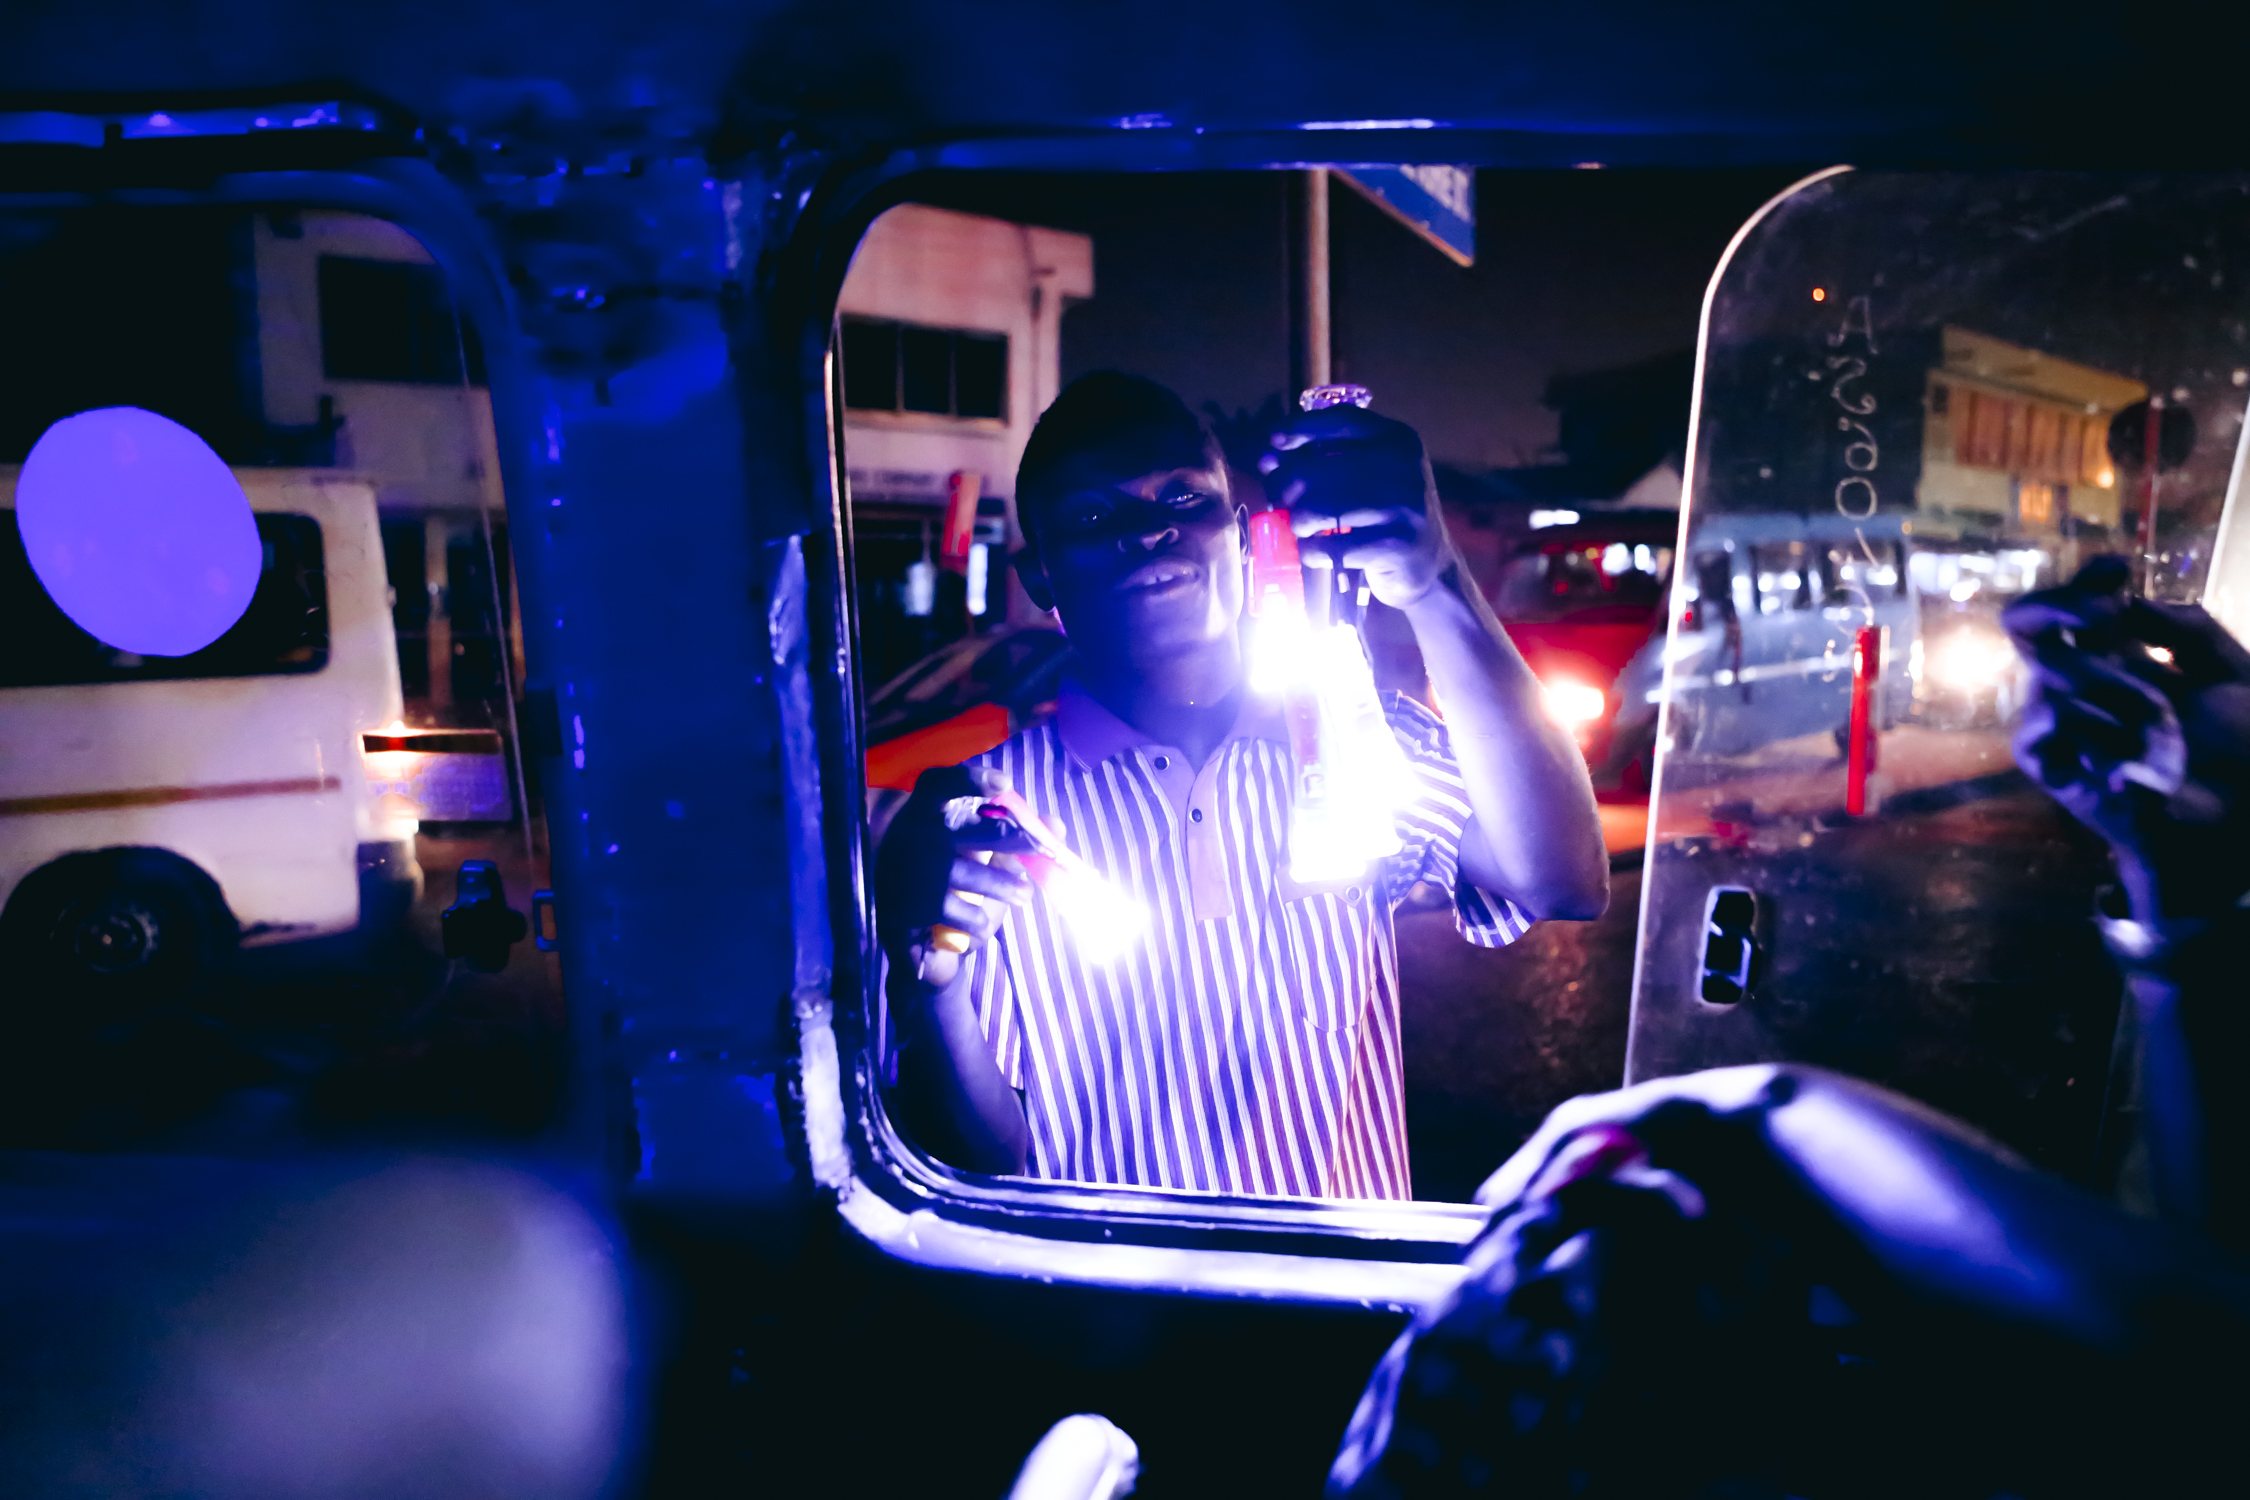 A man is selling a battery powered flashlight to a woman on her way home in a tro tro, in case the lights are out when she comes home. Tro tros are privately owned minibus share taxis.